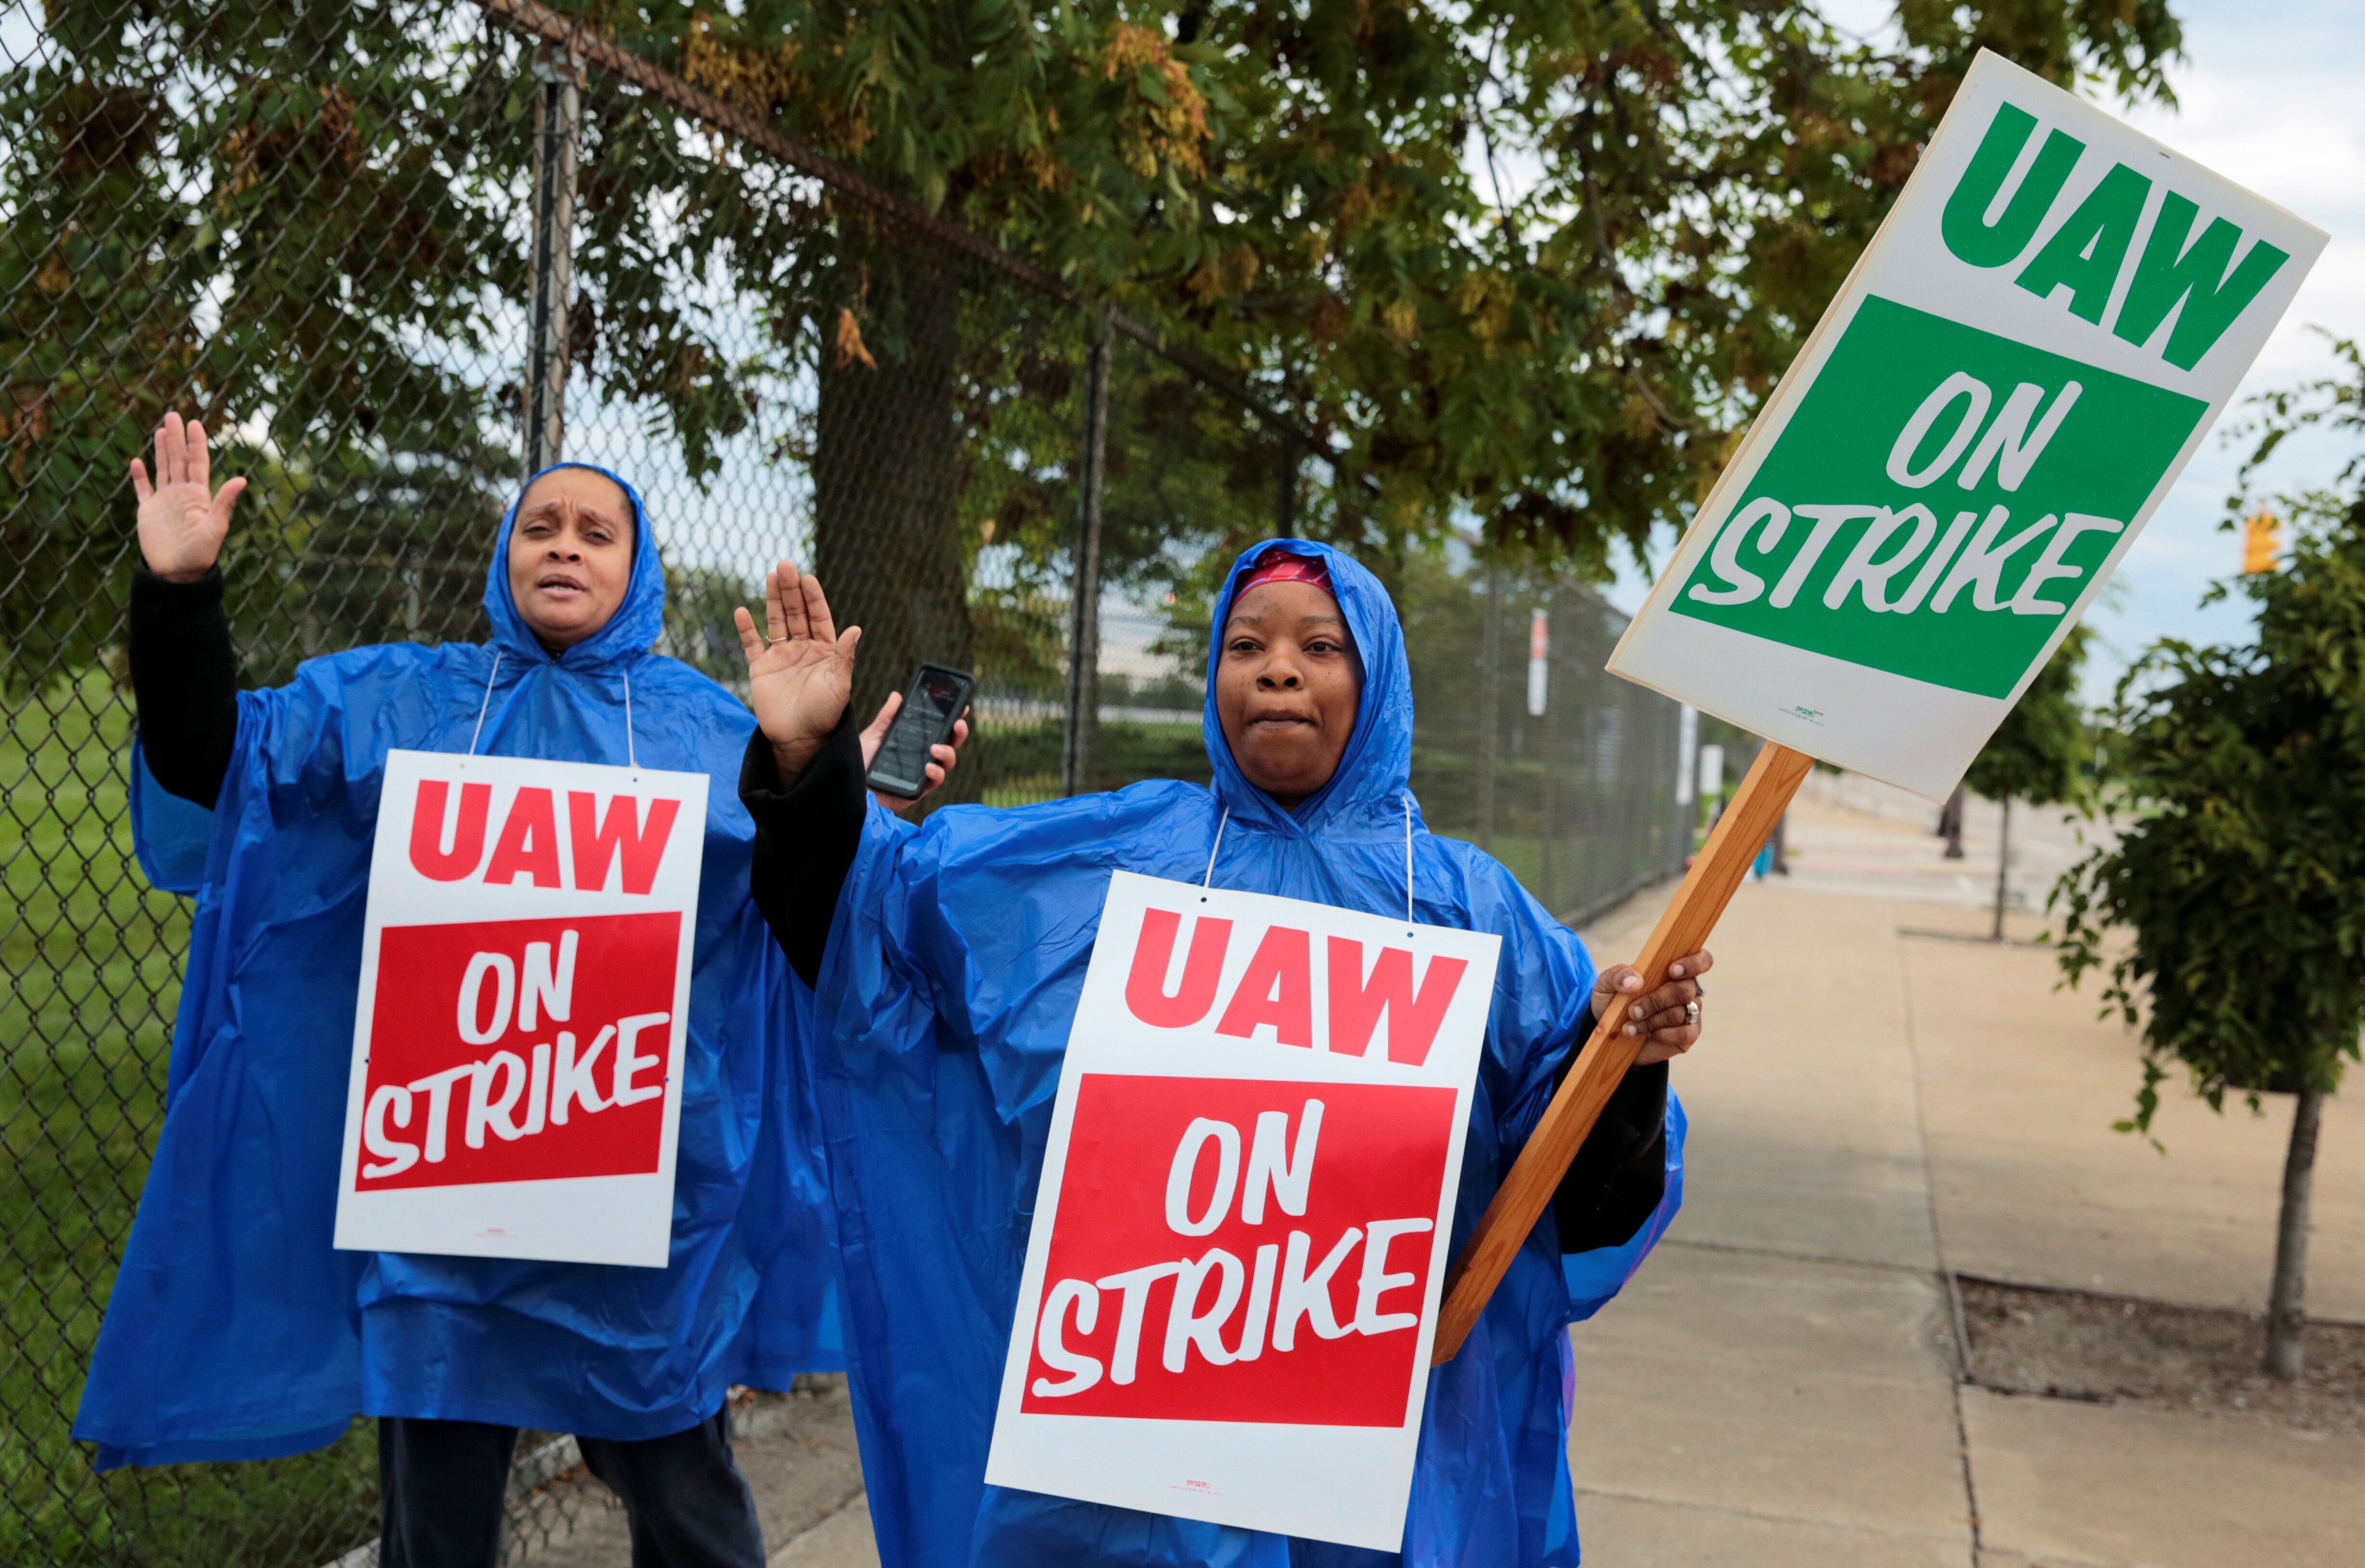 United Auto Workers, Aramark workers, carry strike signs outside the General Motors Detroit-Hamtramck assembly plant in Detro